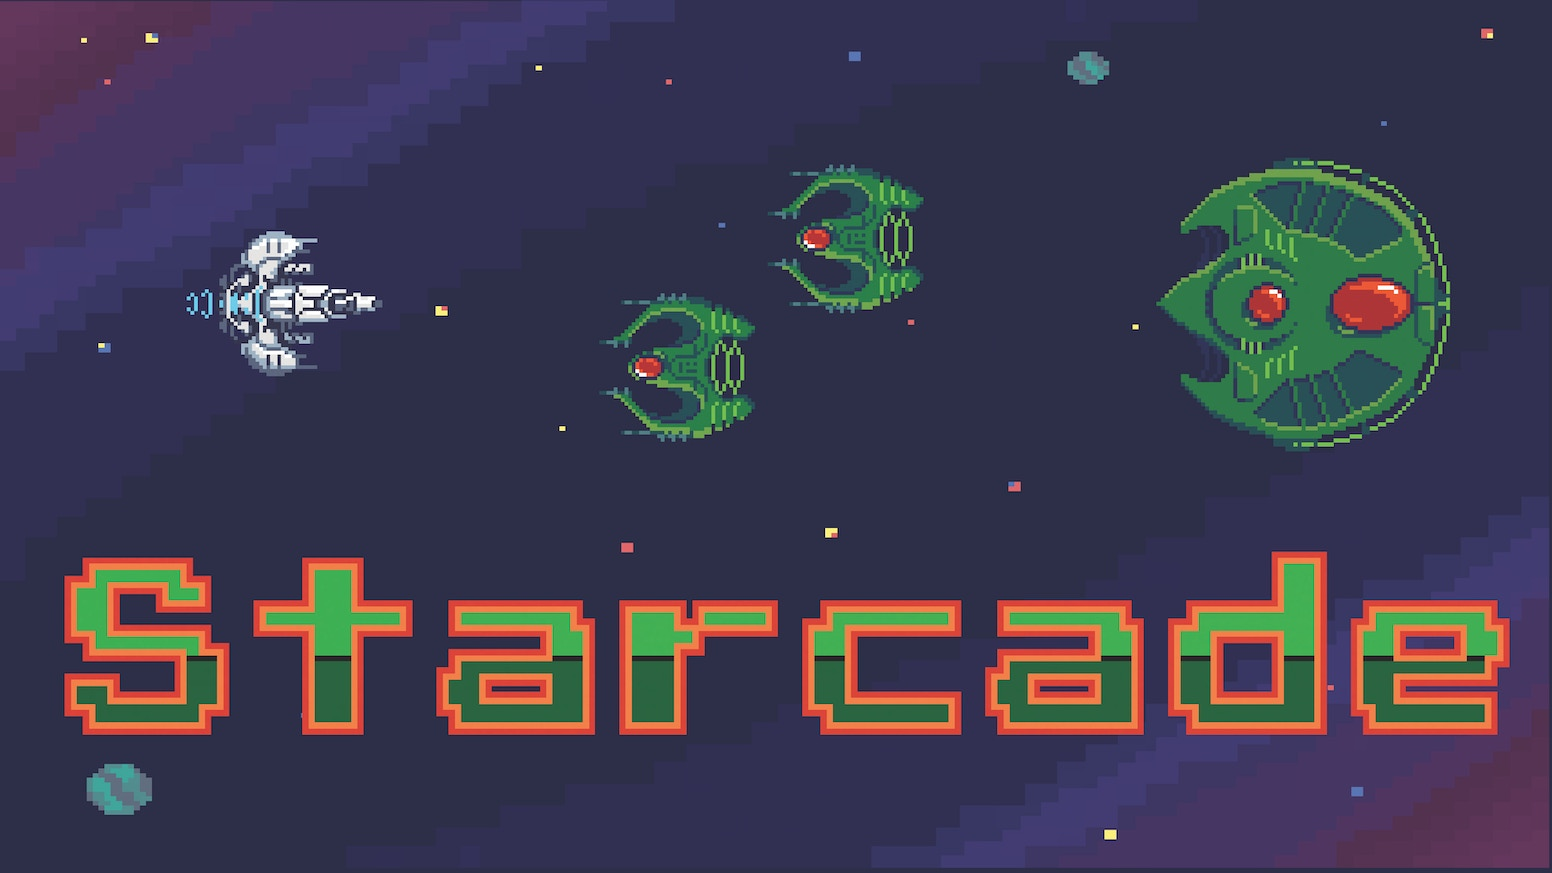 A Retro inspired space game with 3 distinct game modes: SOLO, Player vs Player, and CO-OP in one pack!